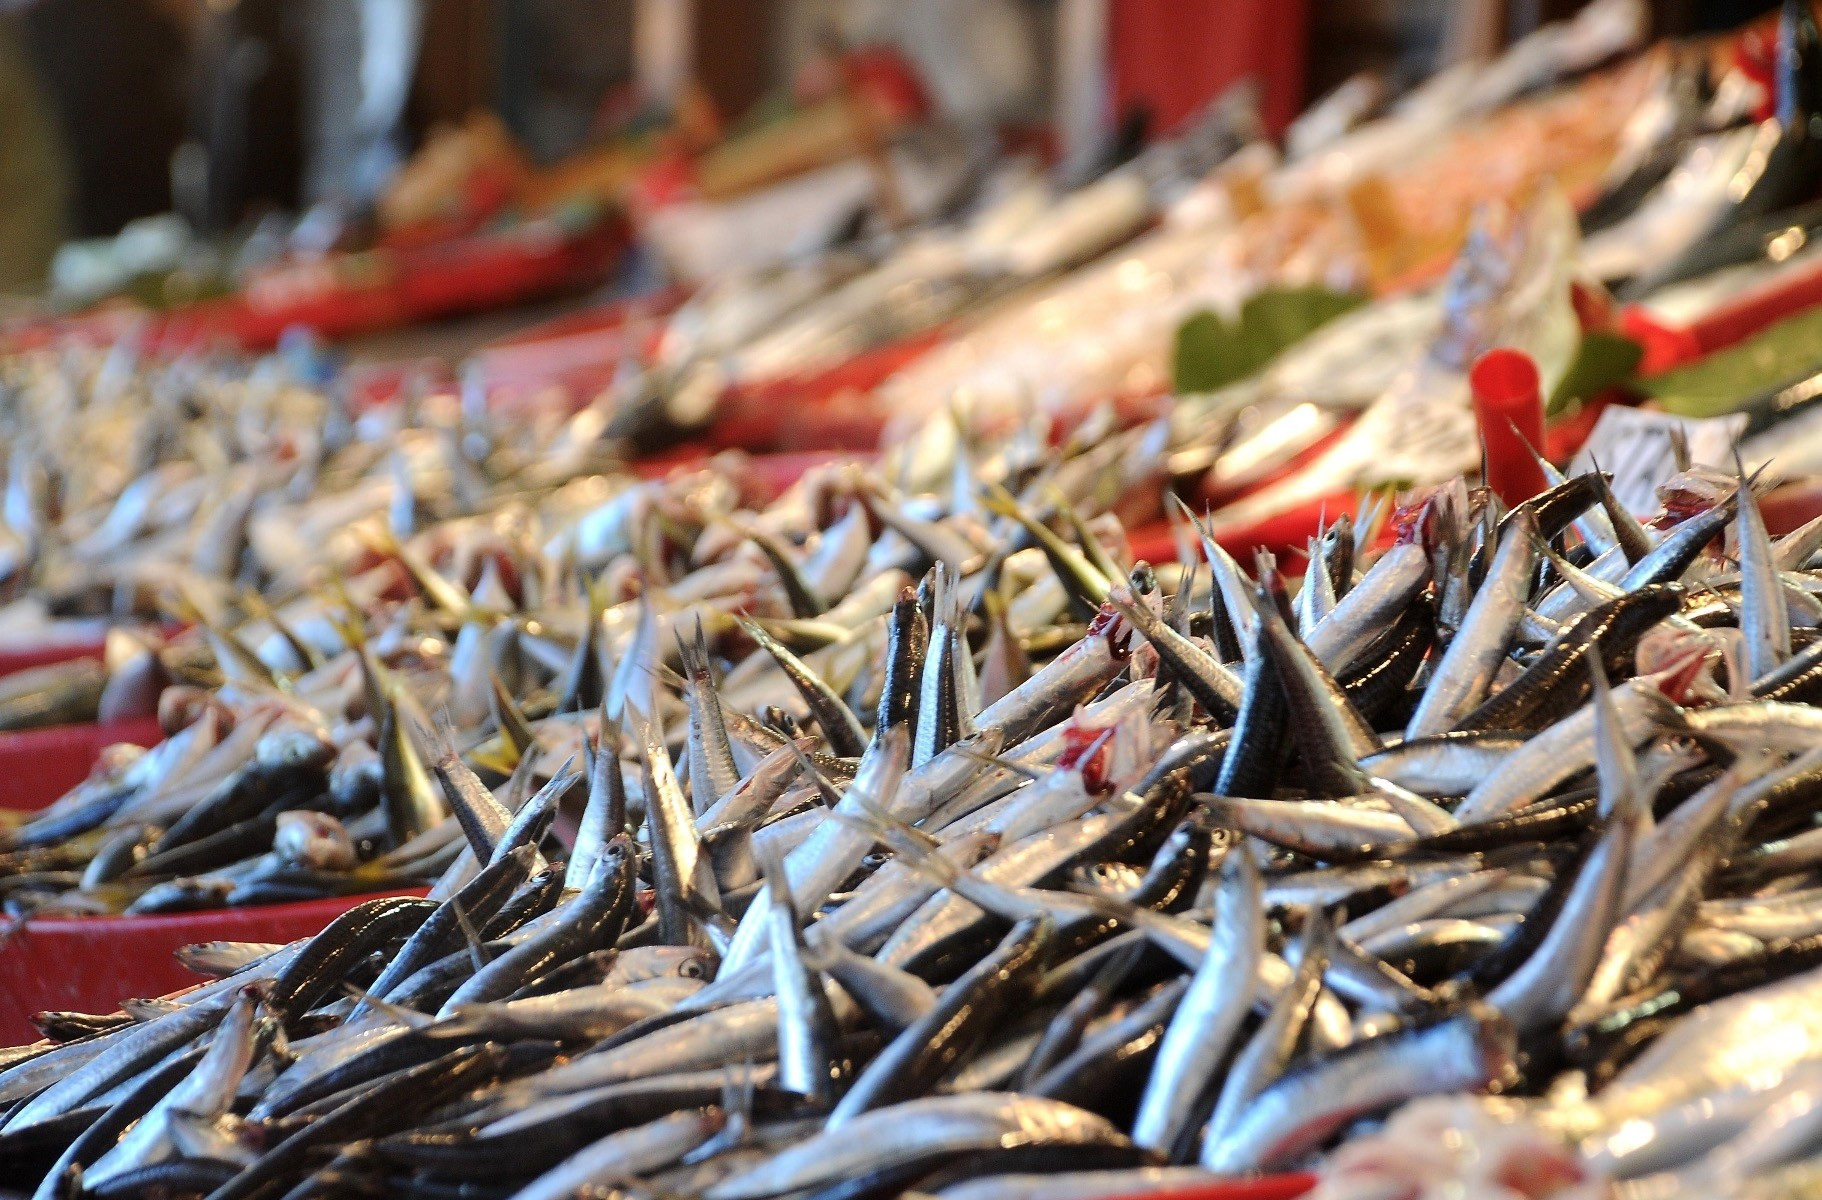 Hamsi, or Anatolian anchovies, could be considered Turkeyu2019s national fish. Abundant in the Black Sea, especially during the winter, hamsi is more than a simple sea creature for the people of the Black Sea region.